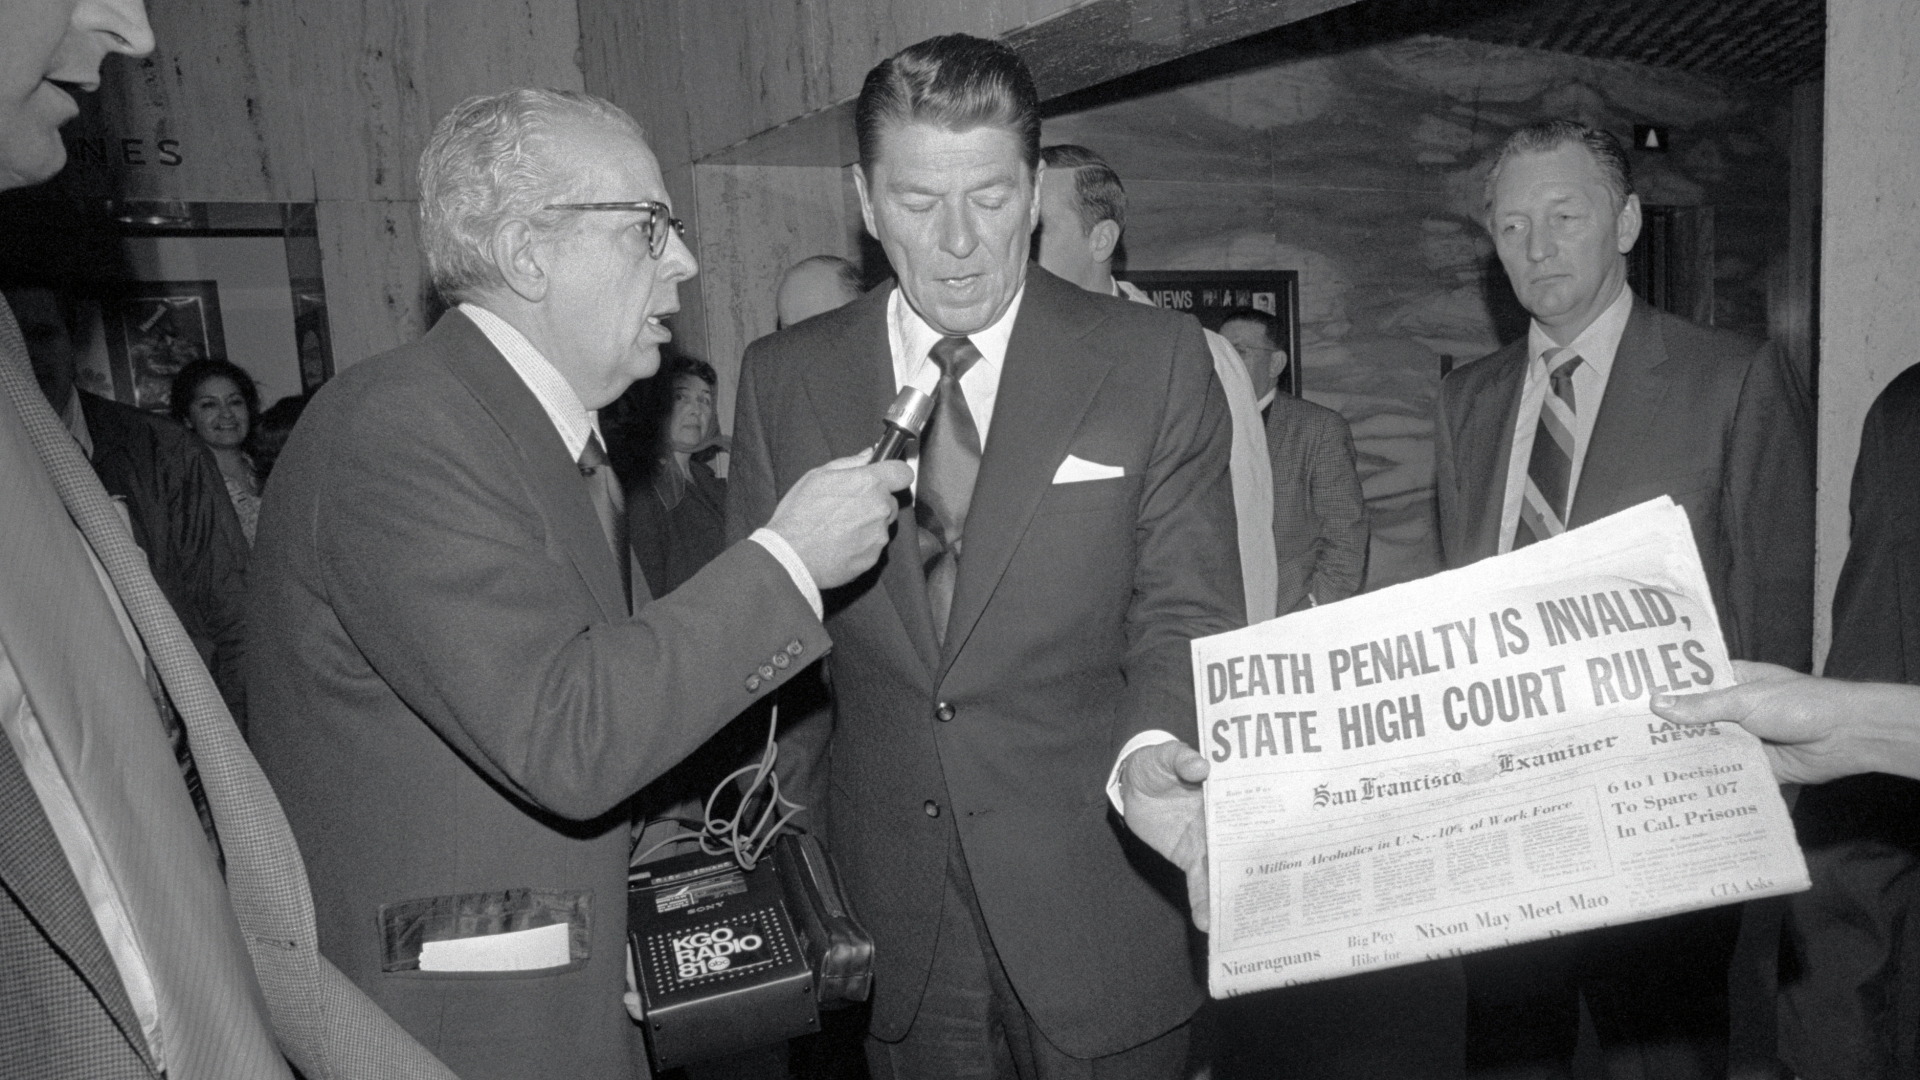 Ronald Reagan, then California's governor who was opposed to the abolition of the death penalty, being interviewed after looking at newspaper account of the State Supreme Court decision that the death penalty is unconstitutional, 1972. (Credit: Bettmann Archive/Getty Images)